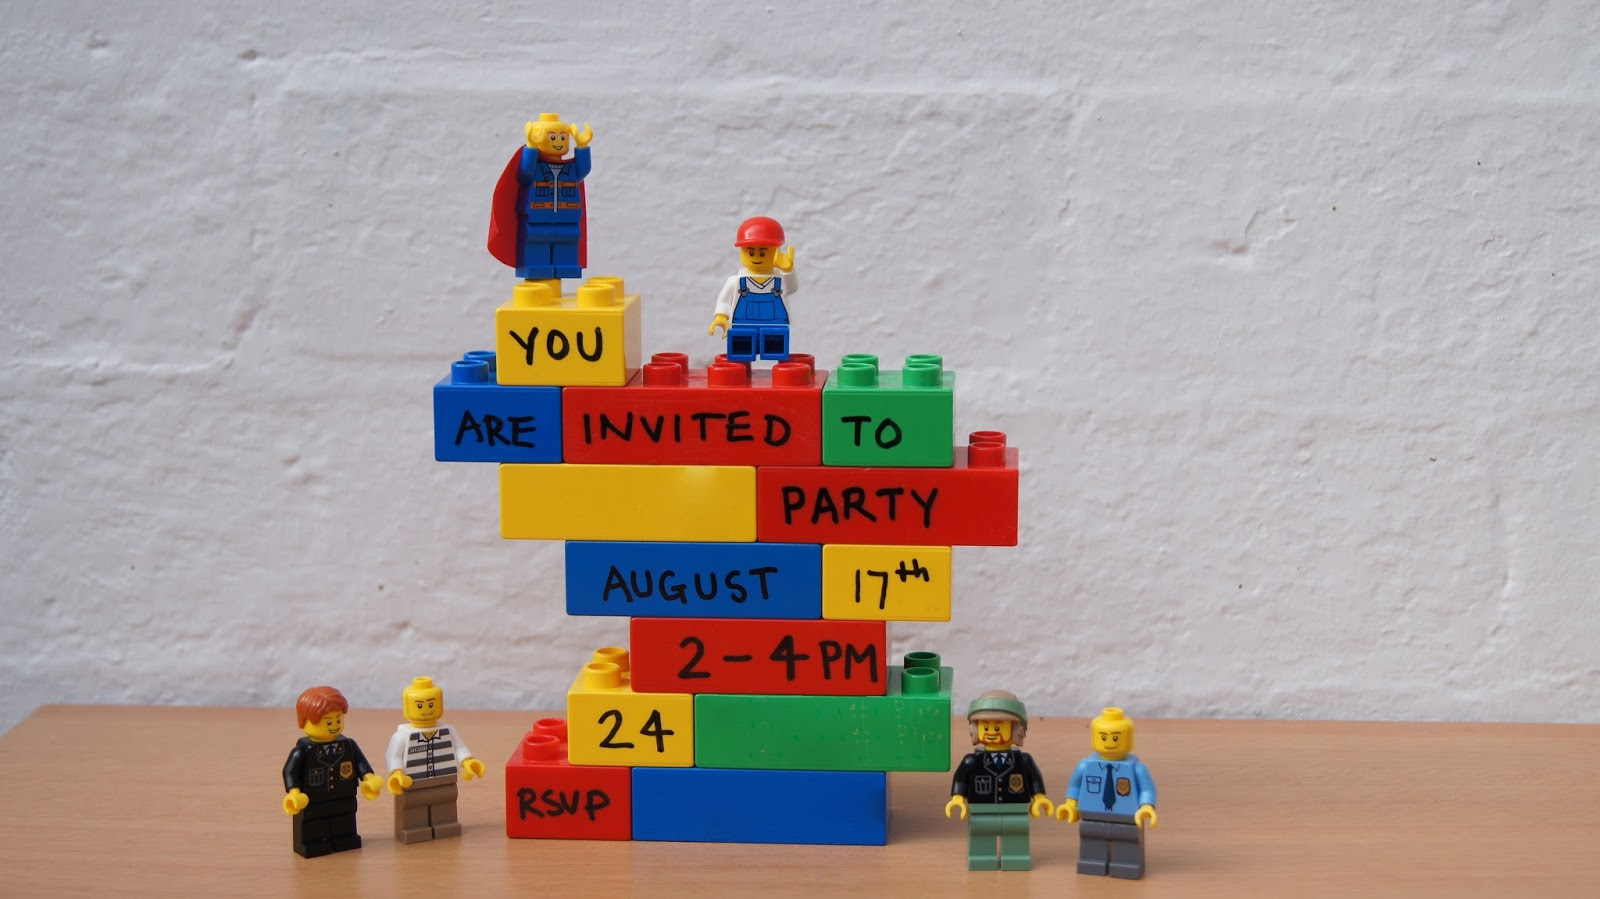 in preparation for a lego party, Party invitations